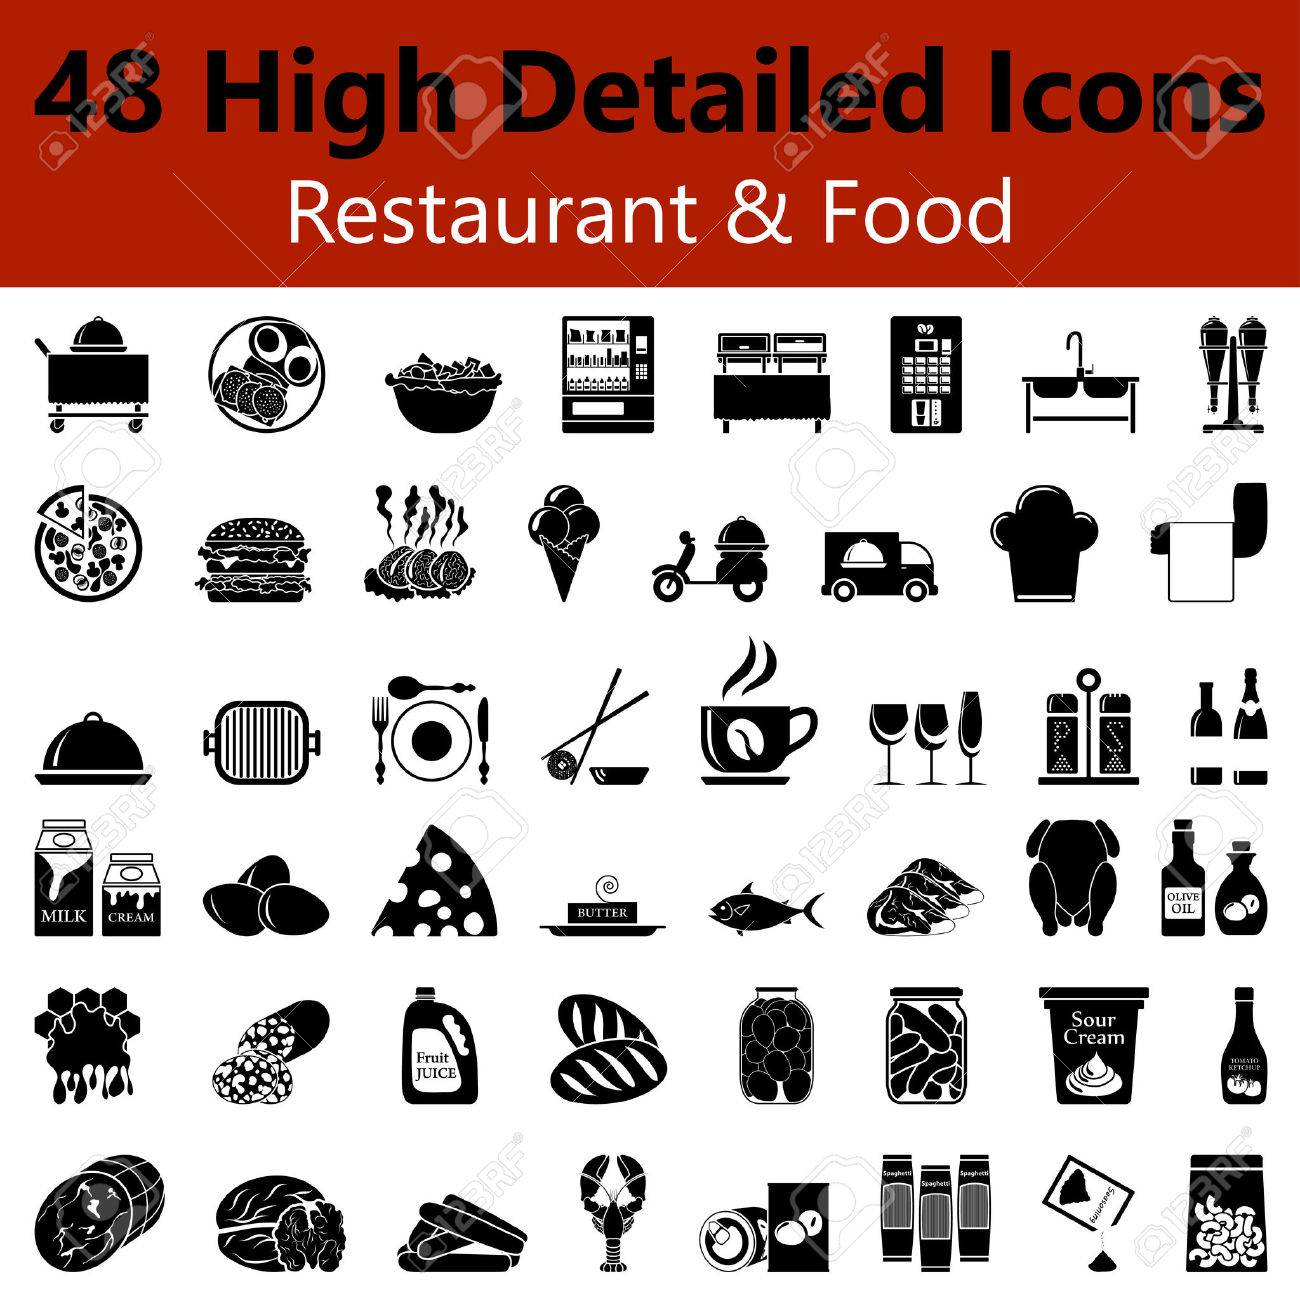 Set of High Detailed Restaurant and Food Smooth Icons in Black Colors - 44840290